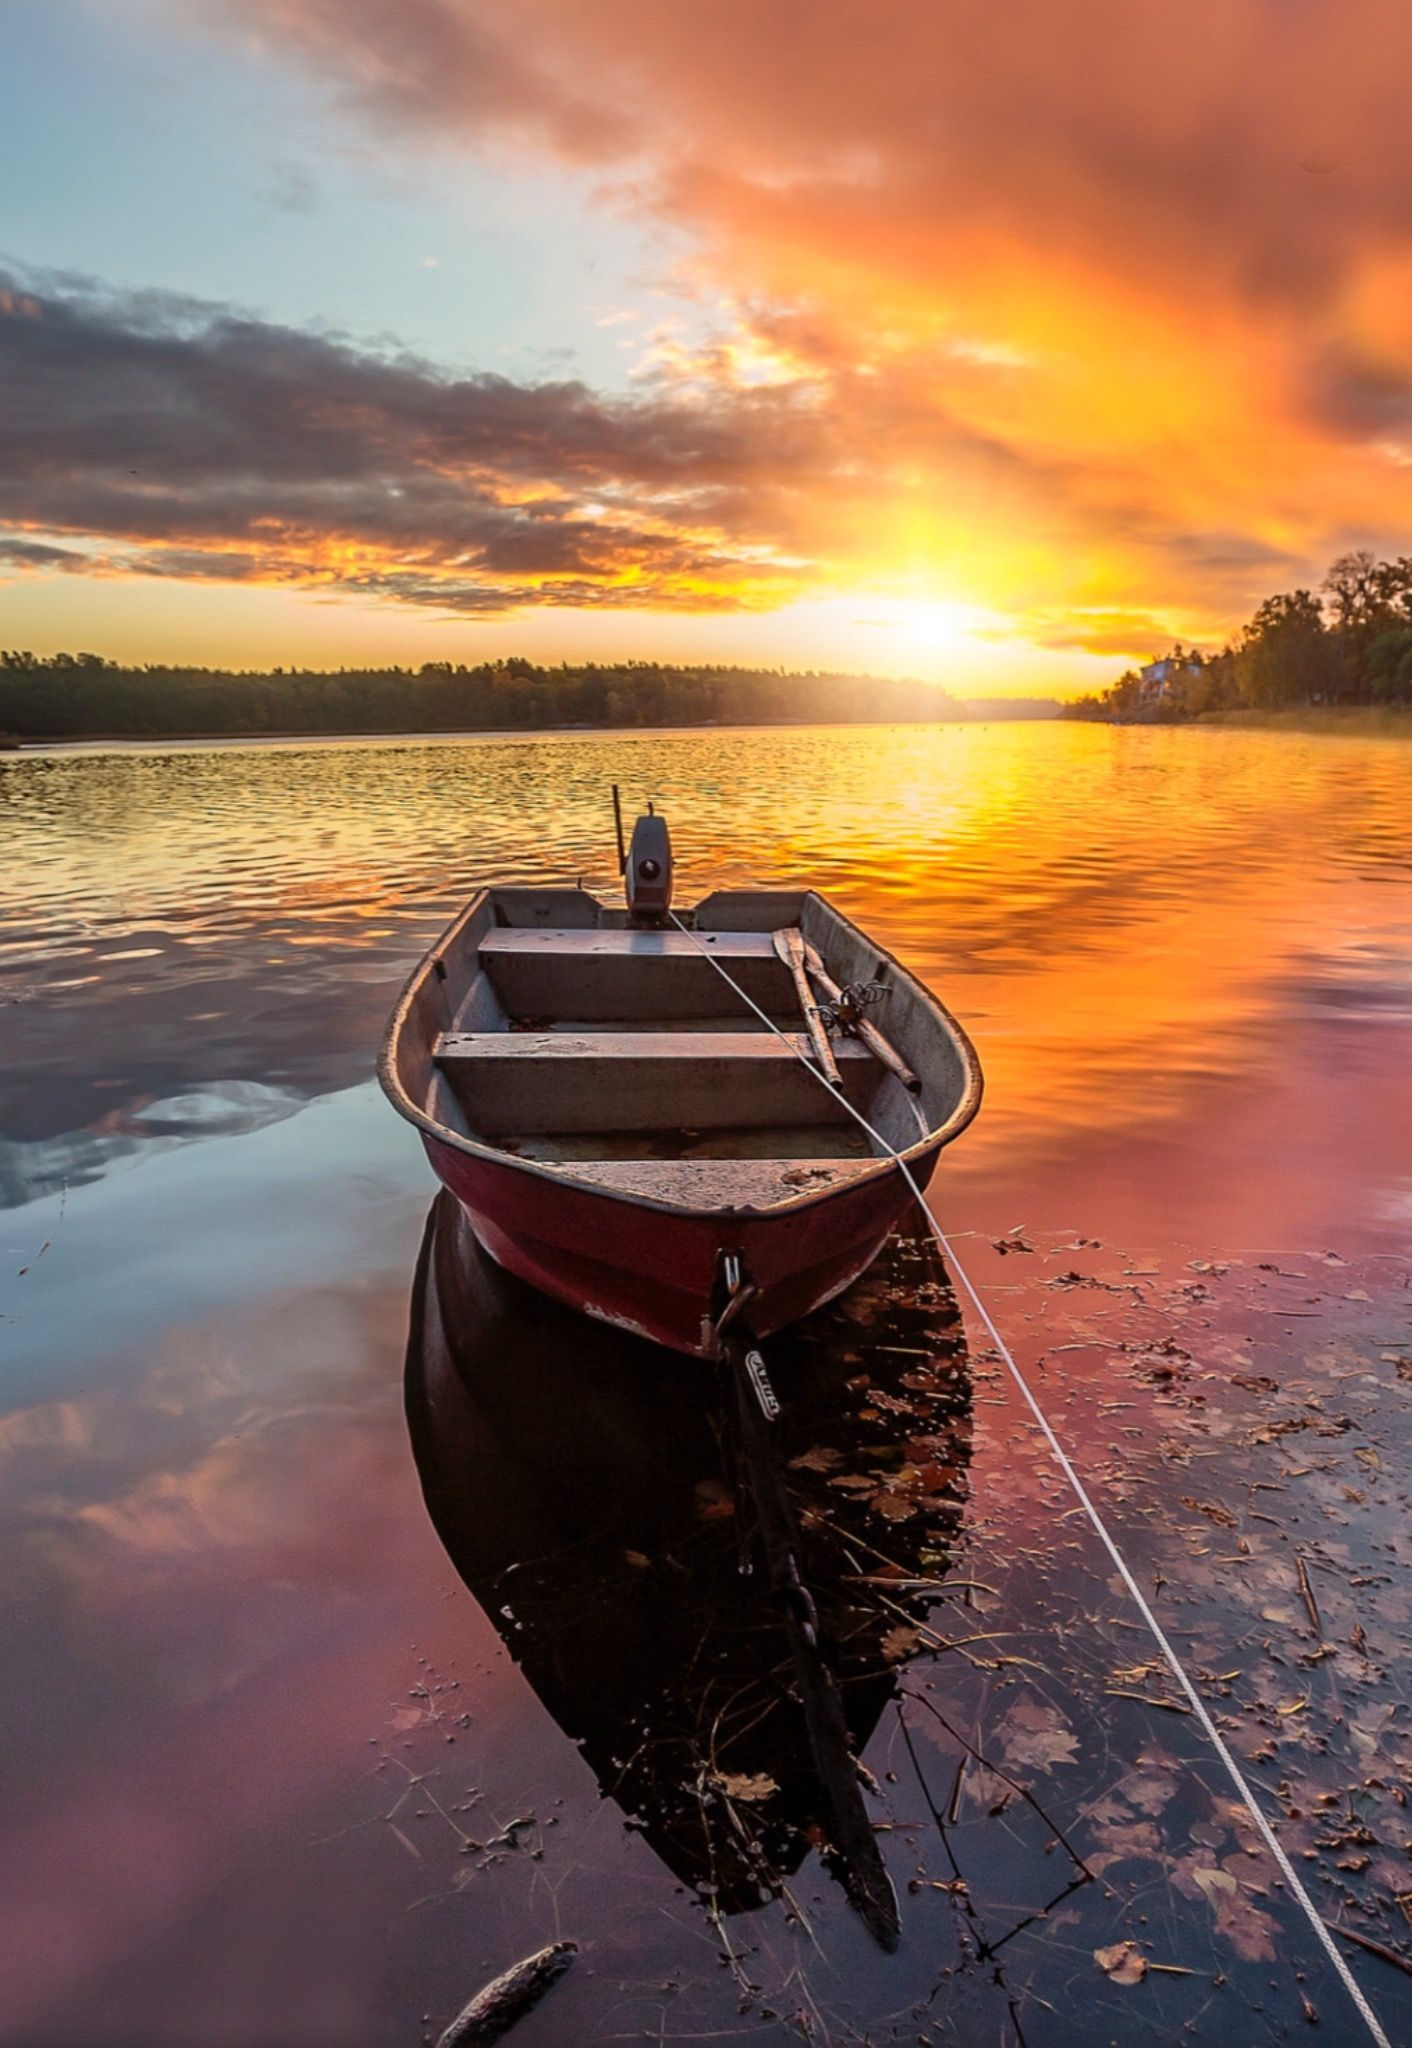 Sunset, Boat. Photo by brandt. Source